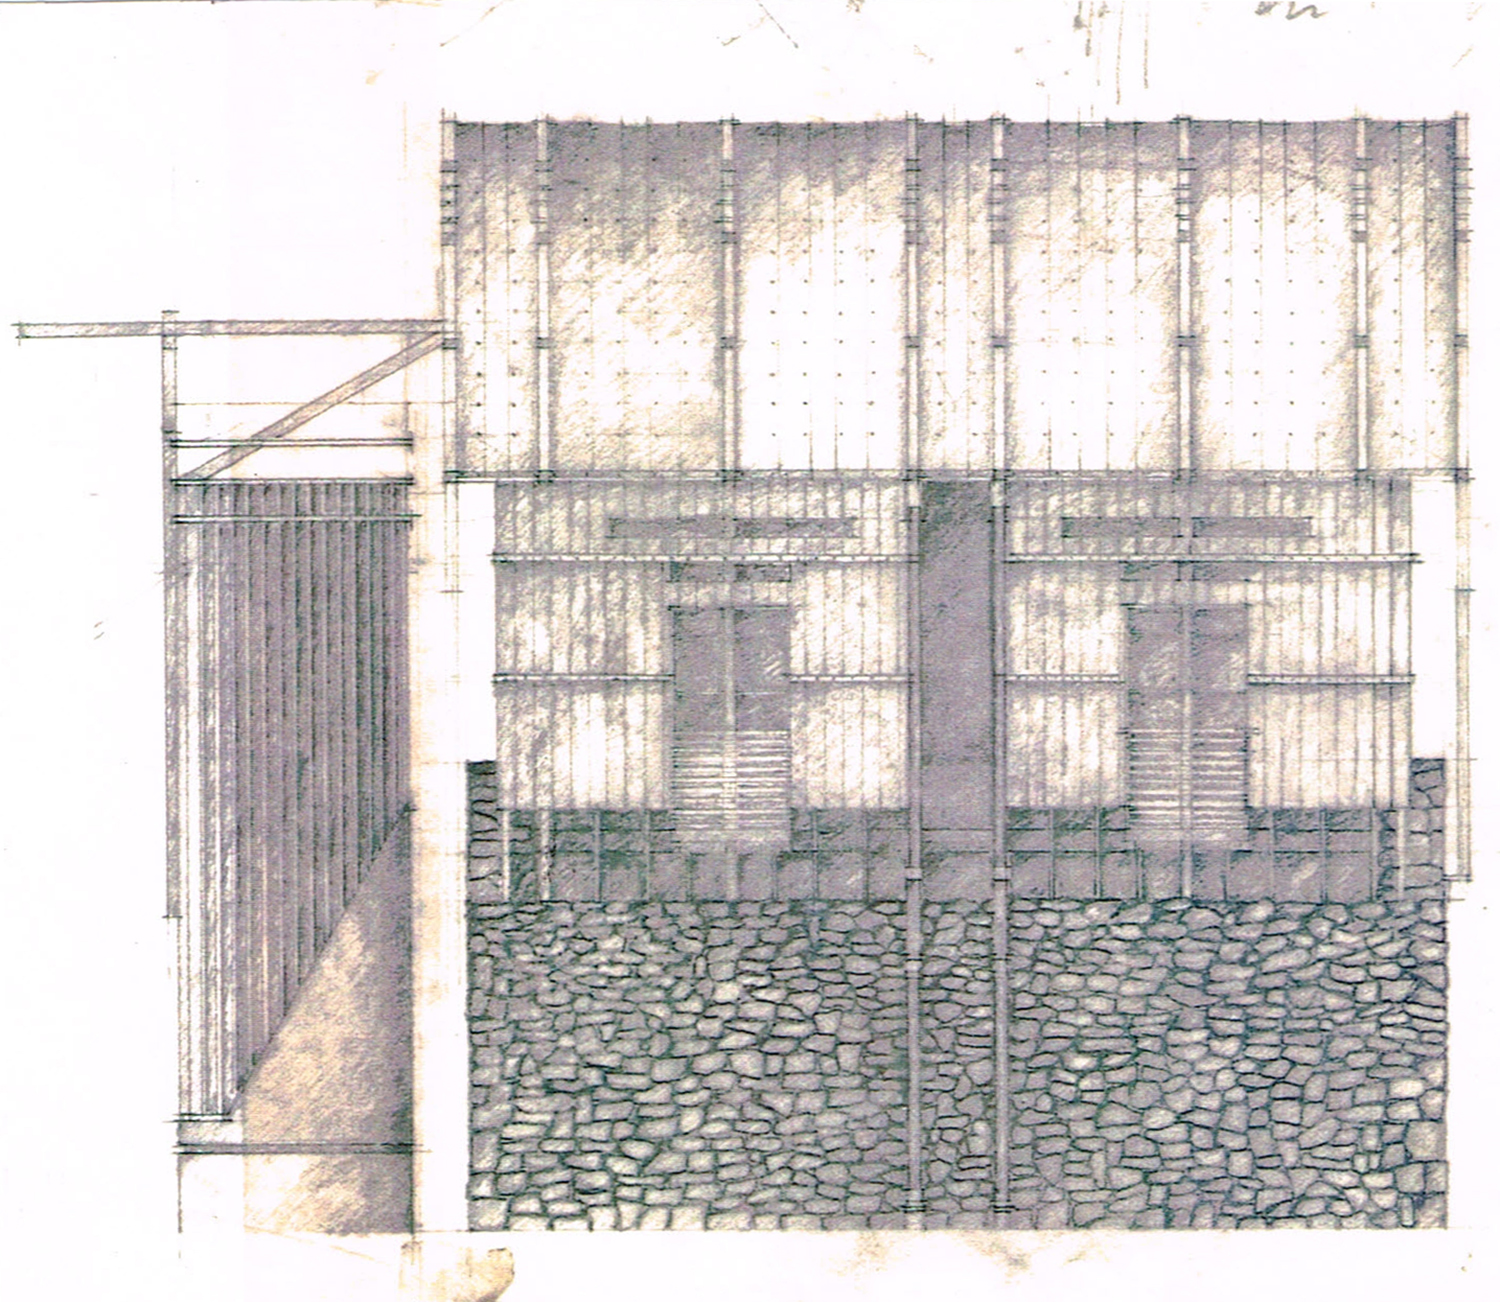 South Elevation Sketch